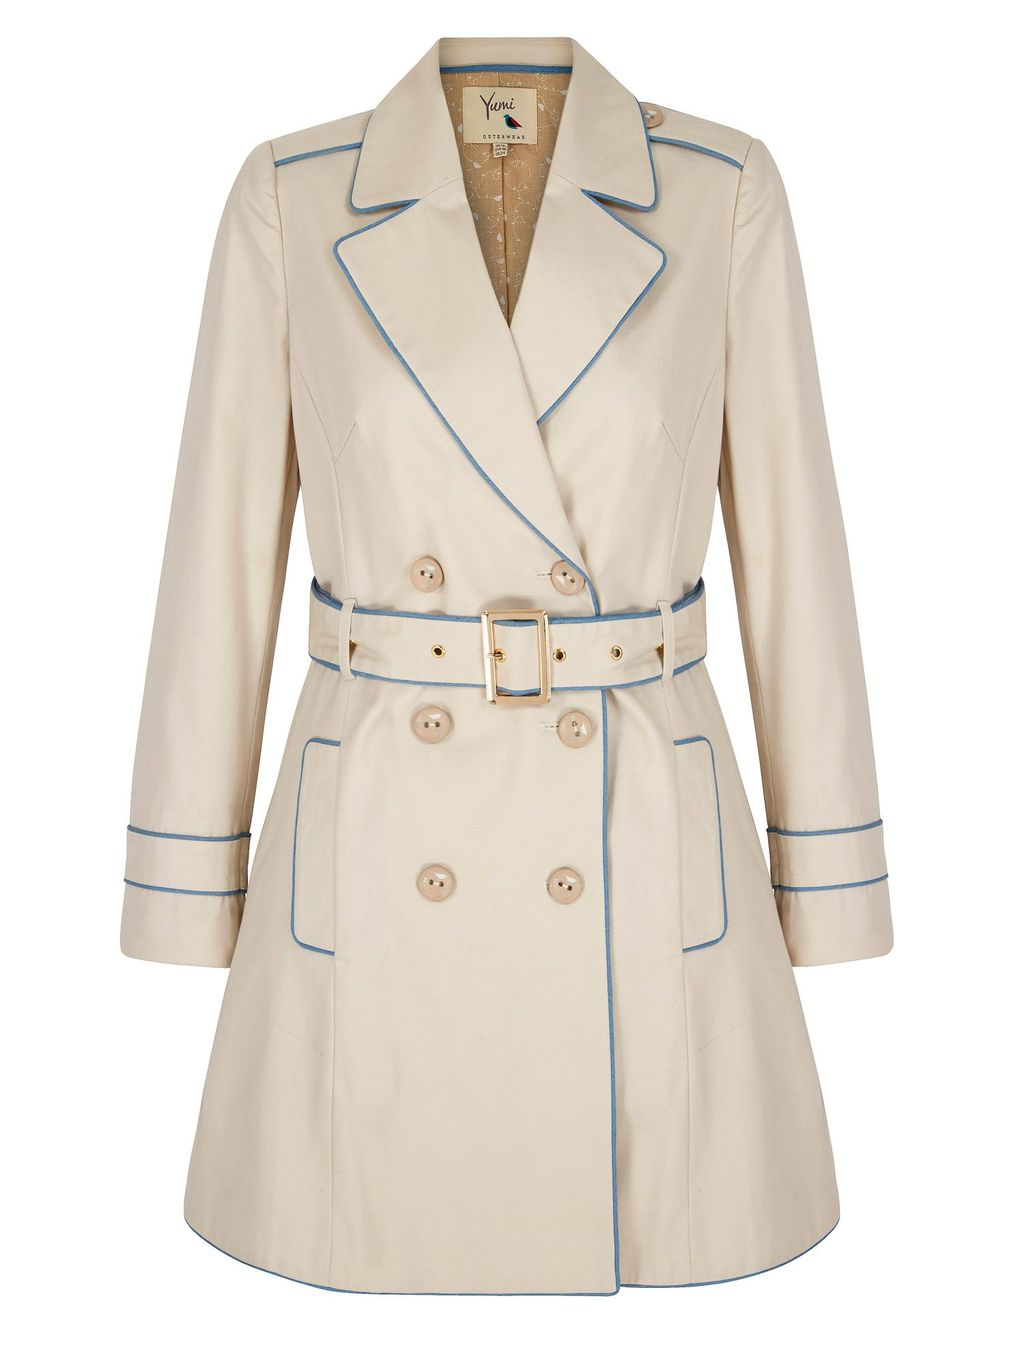 Contrast Trench Coat, Stone - pattern: plain; style: trench coat; collar: standard lapel/rever collar; length: mid thigh; predominant colour: stone; occasions: work; fit: tailored/fitted; fibres: cotton - 100%; waist detail: belted waist/tie at waist/drawstring; sleeve length: long sleeve; sleeve style: standard; texture group: cotton feel fabrics; collar break: medium; pattern type: fabric; season: a/w 2015